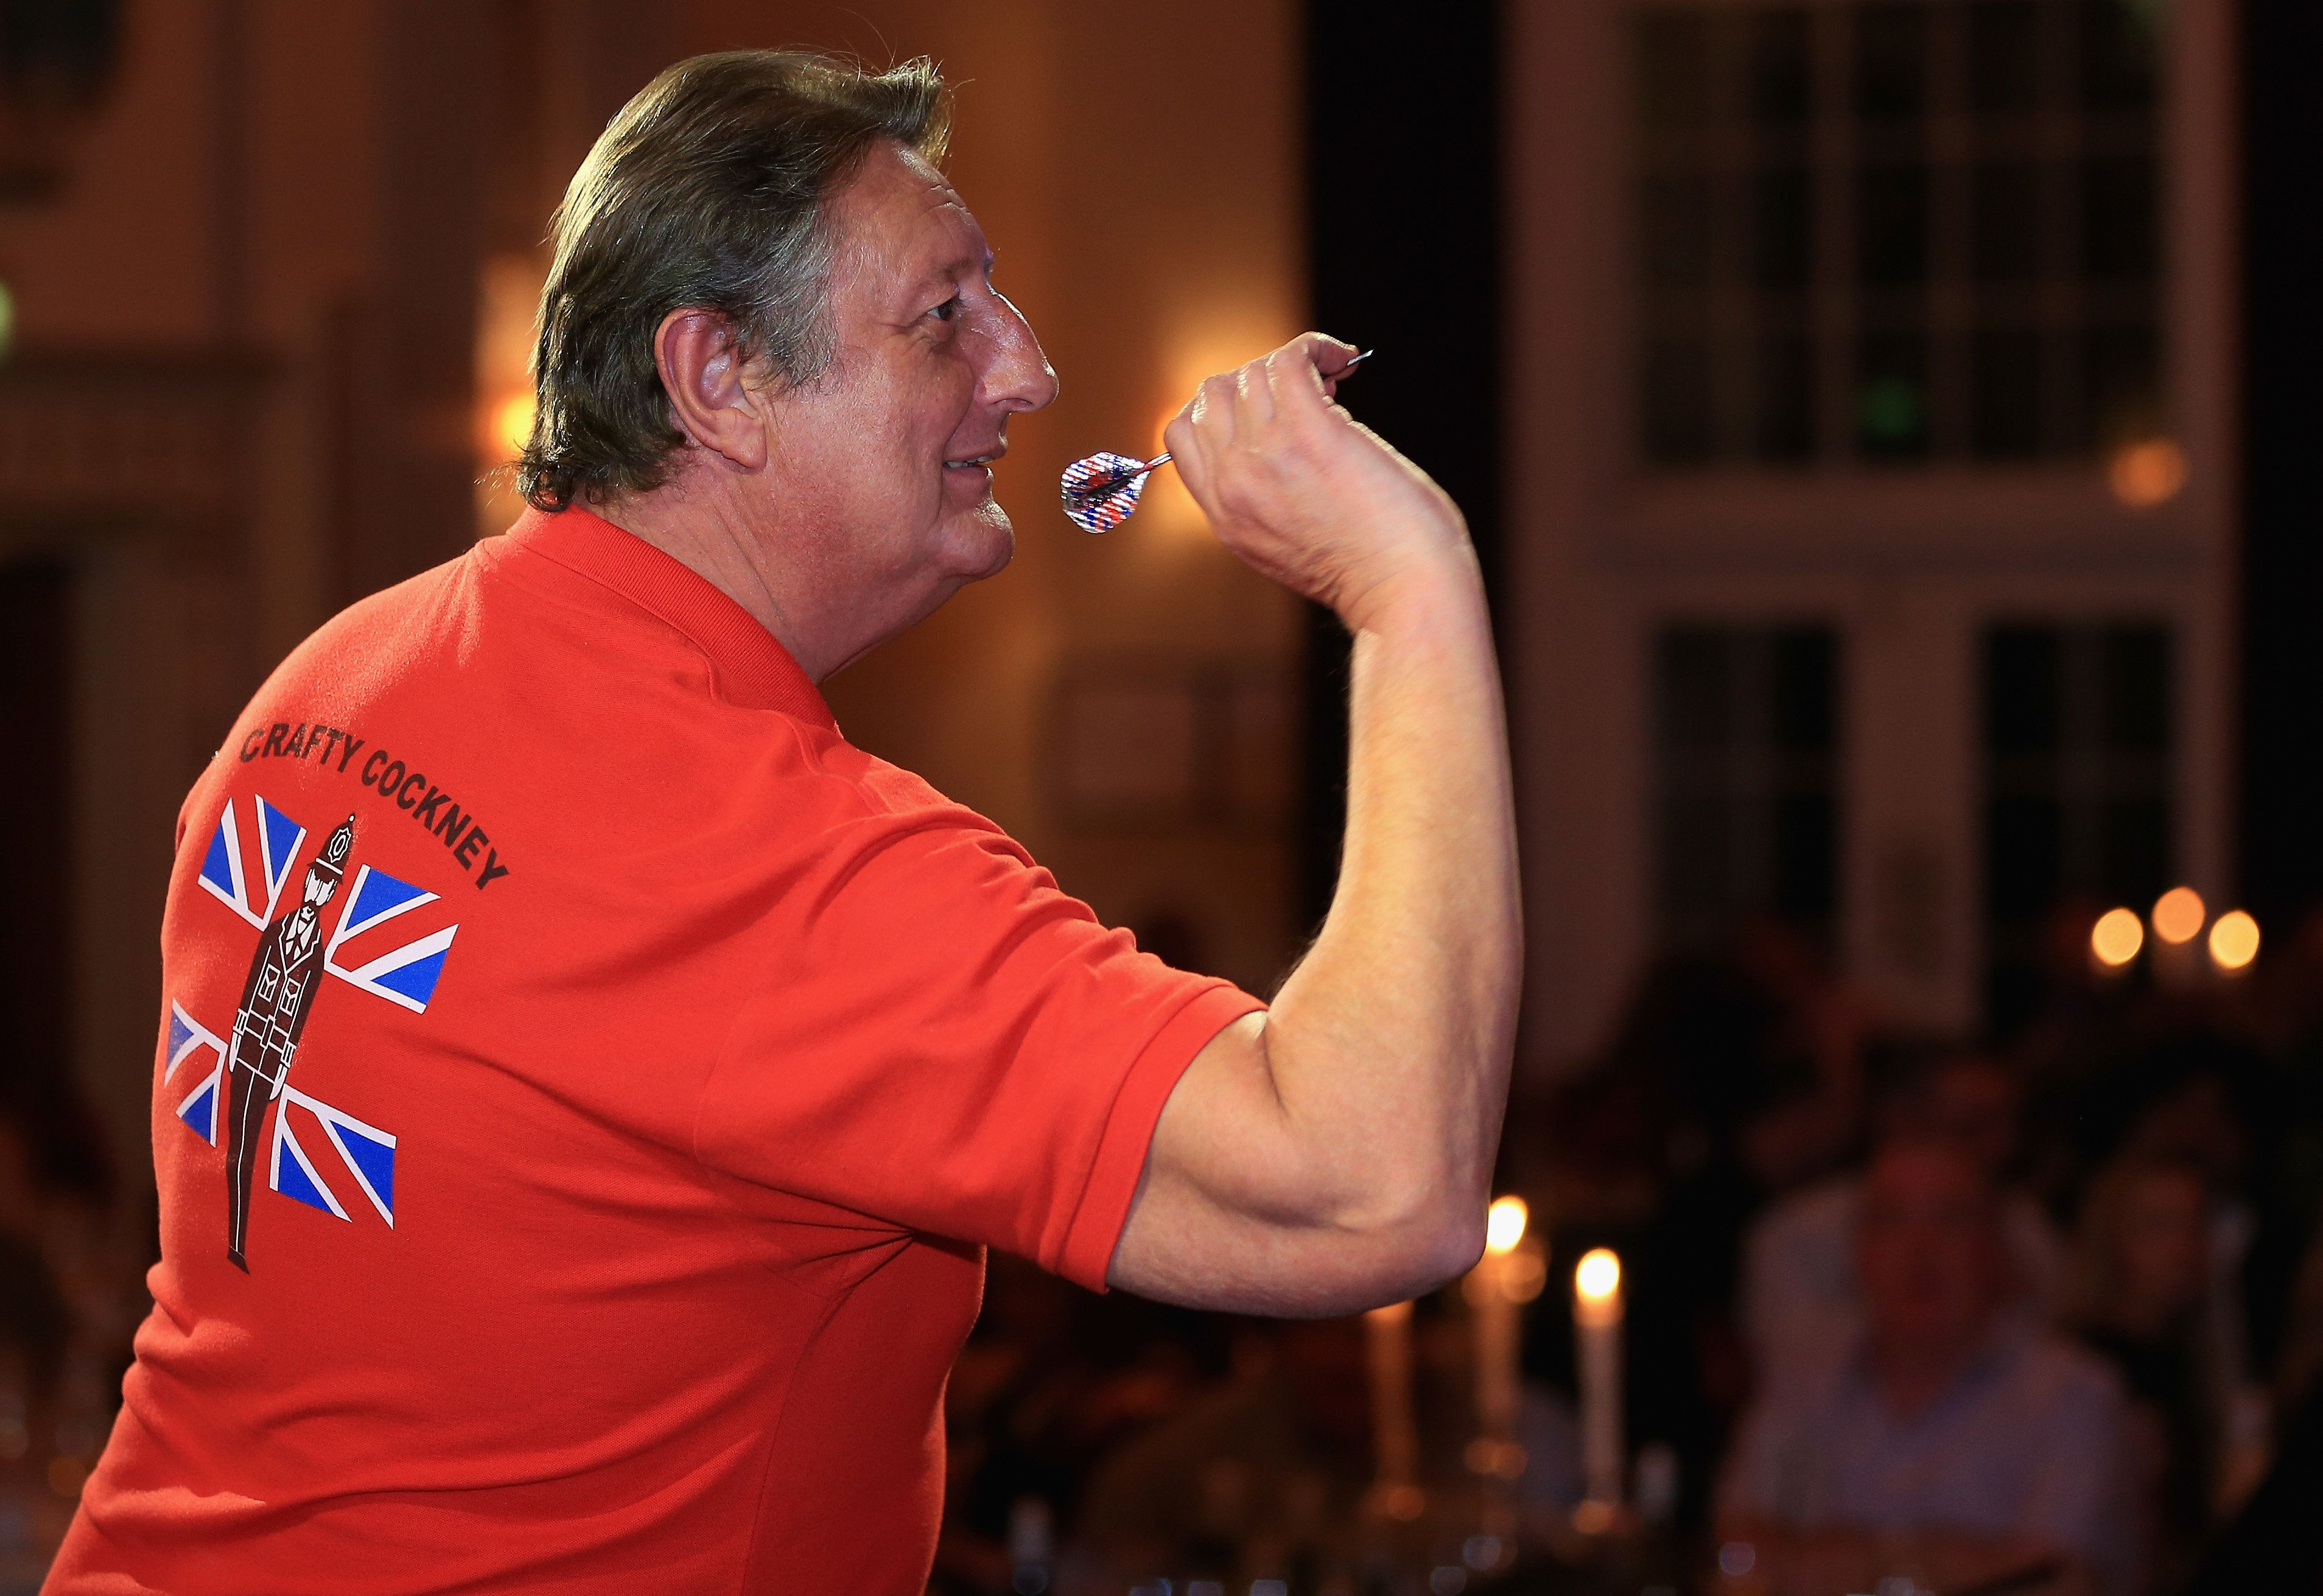 Eric Bristow has lost his Sky Sports role over comments he made about the football sexual abuse